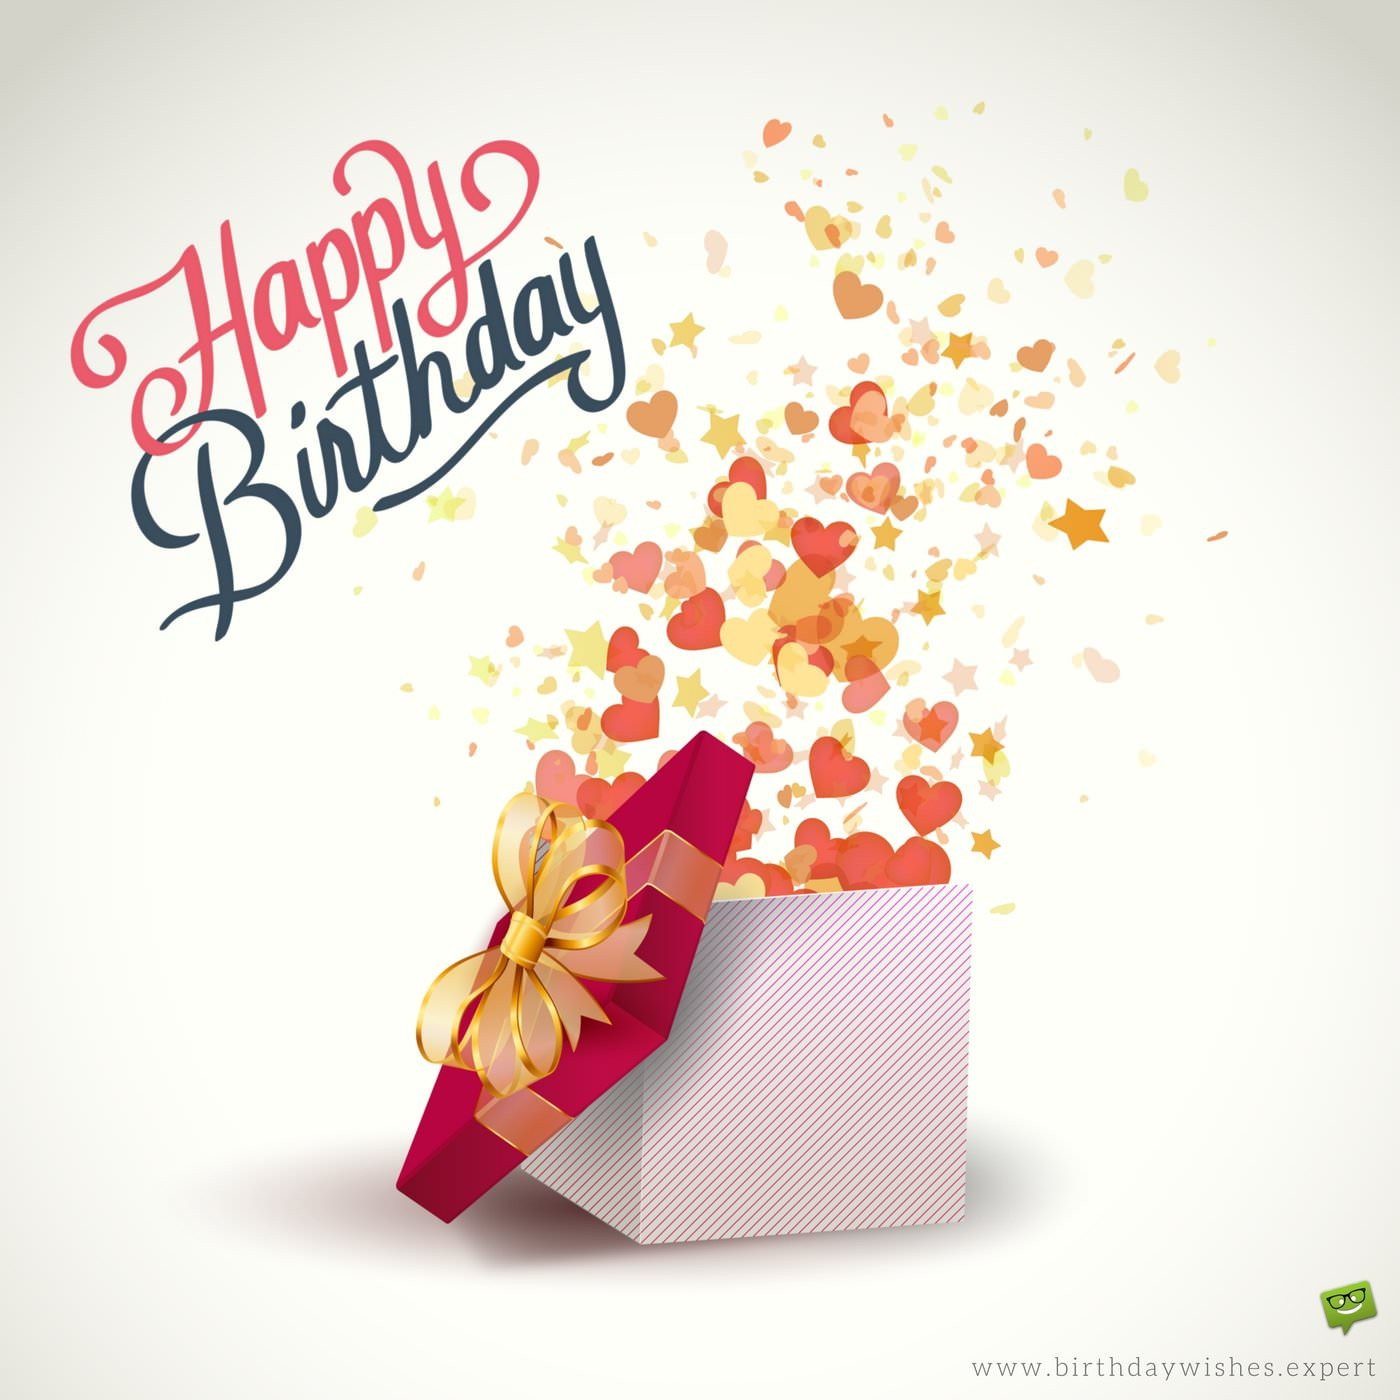 Best ideas about Images Of Birthday Wishes . Save or Pin Happy Birthday To You Now.